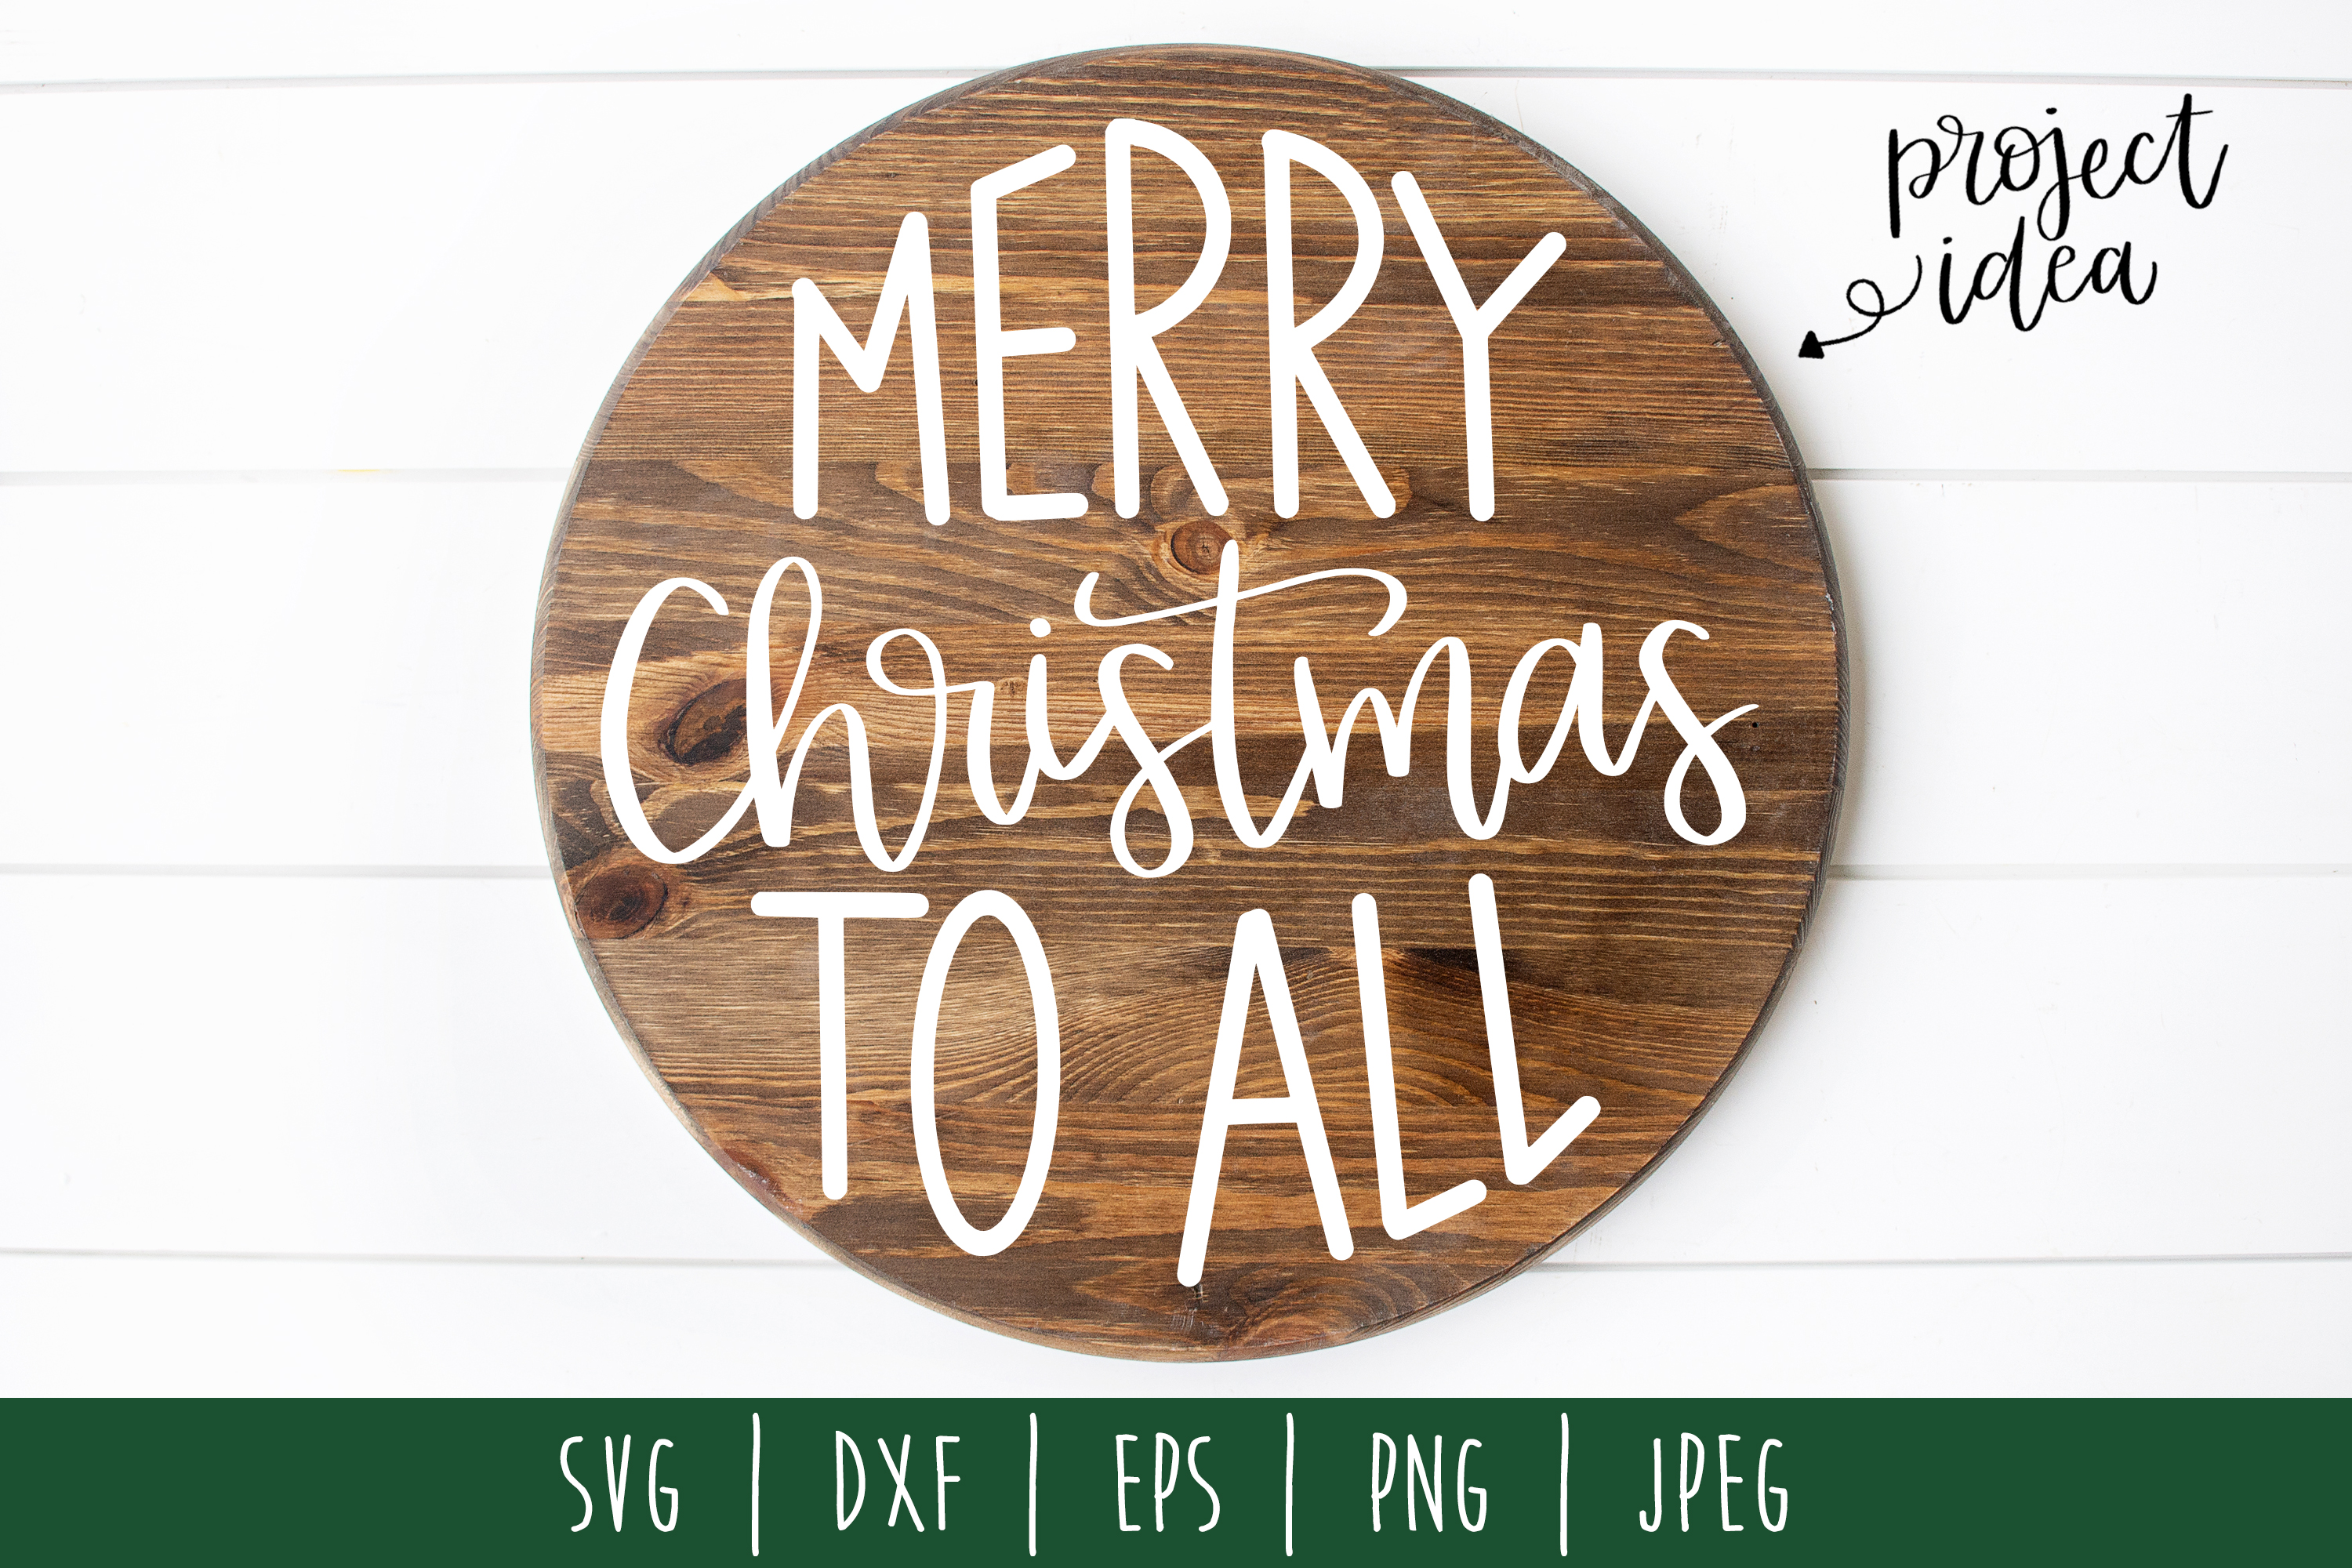 Merry Christmas To All SVG, DXF, EPS, PNG JPEG example image 1